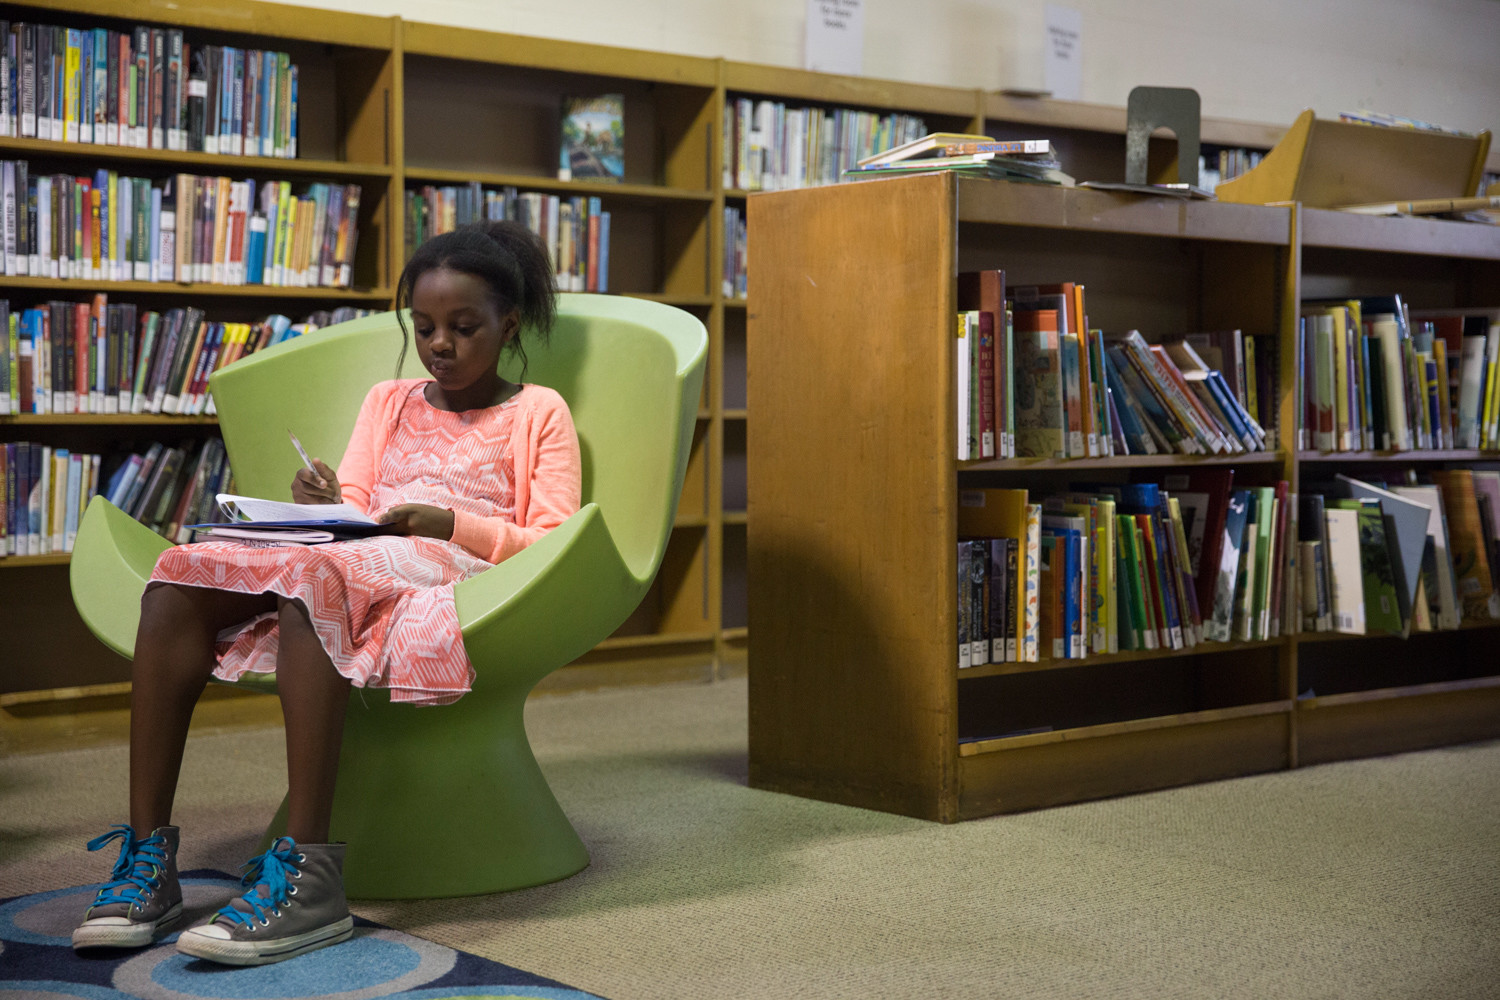 Hadasah Ndegwa, fifth-grader at P.S. 81 Robert Christen, does homework at the library.